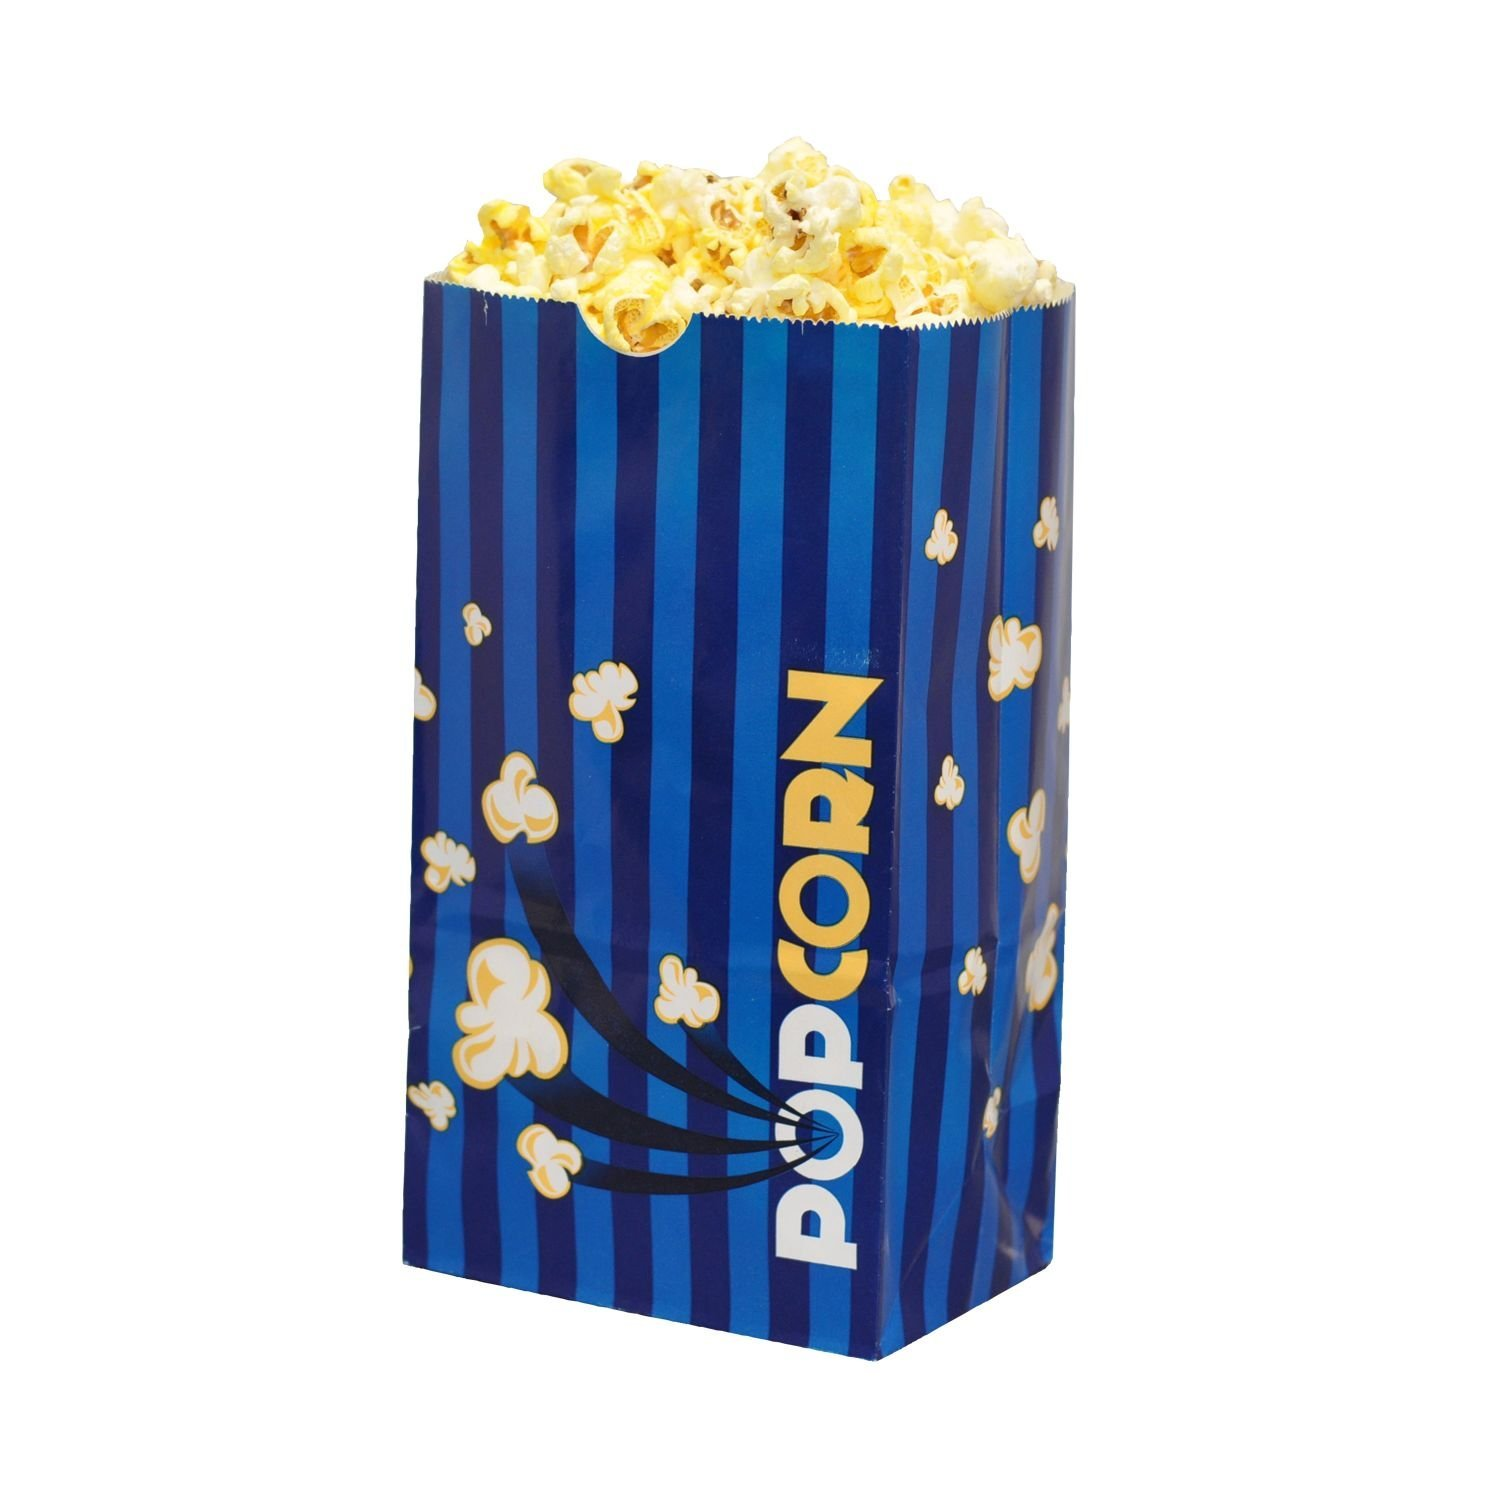 Hoosier Hill Farm Laminated Popcorn Bags - 2.5 oz. (50 Bags)